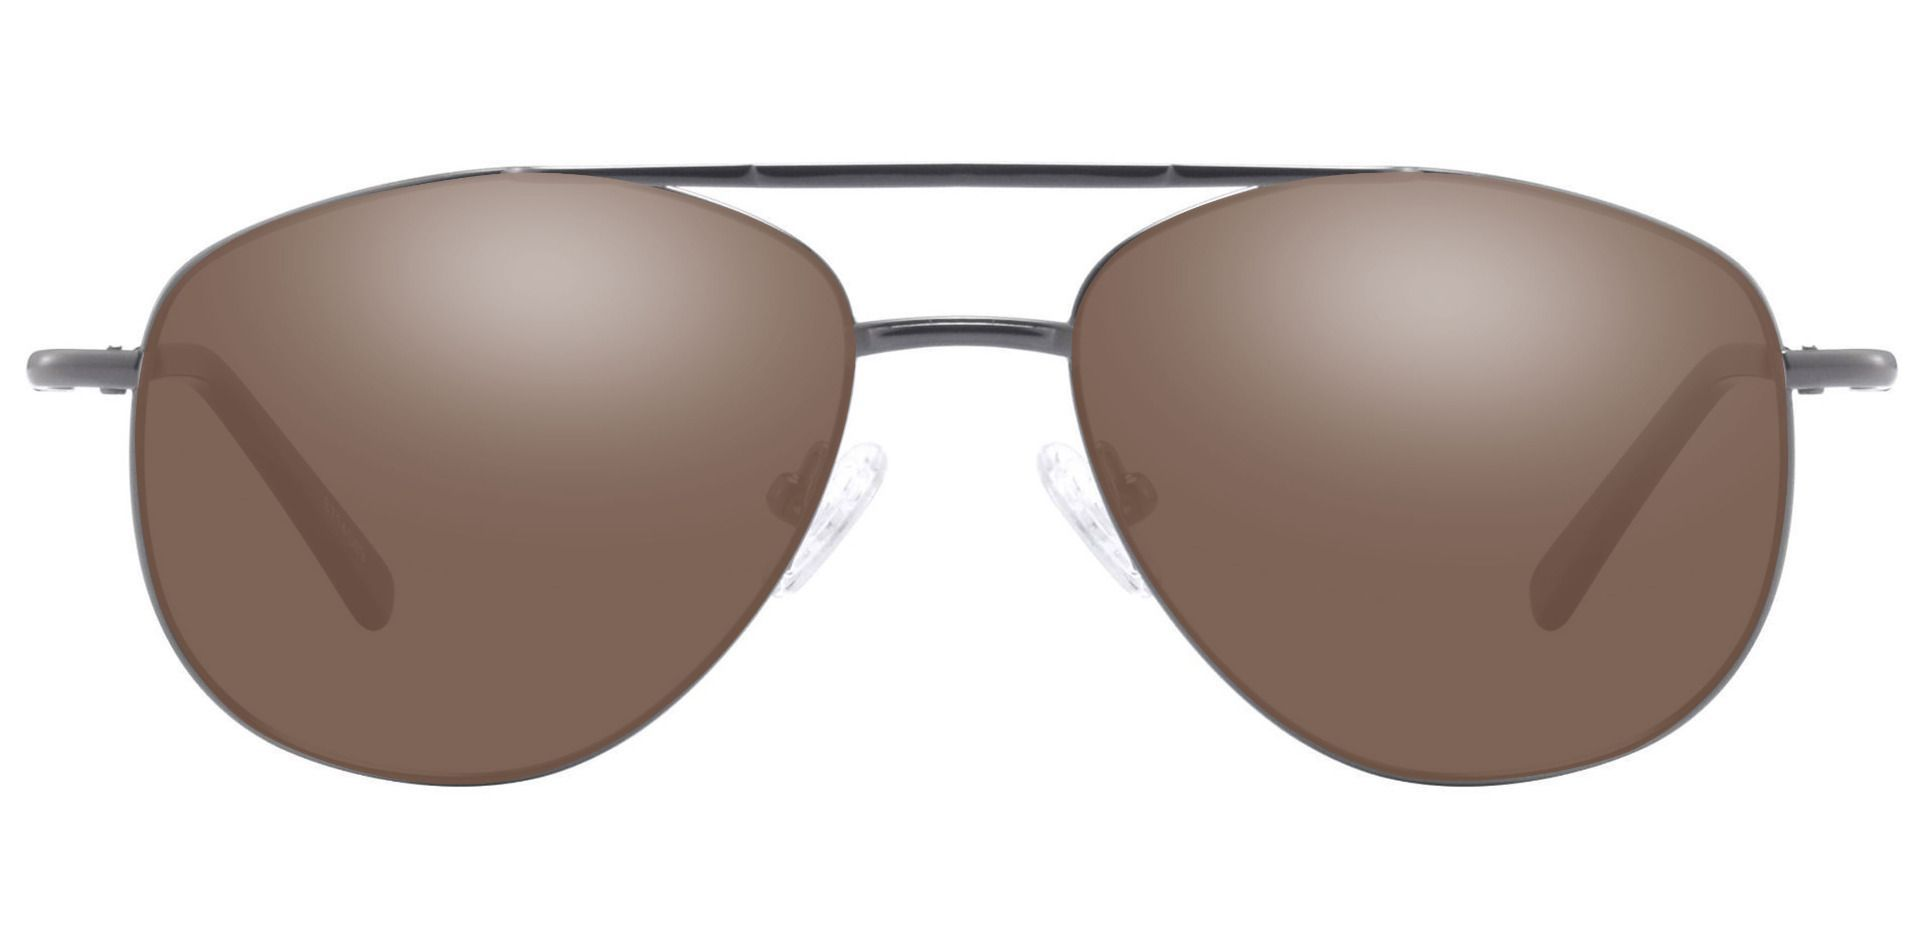 Dwight Aviator Prescription Sunglasses - Gray Frame With Brown Lenses